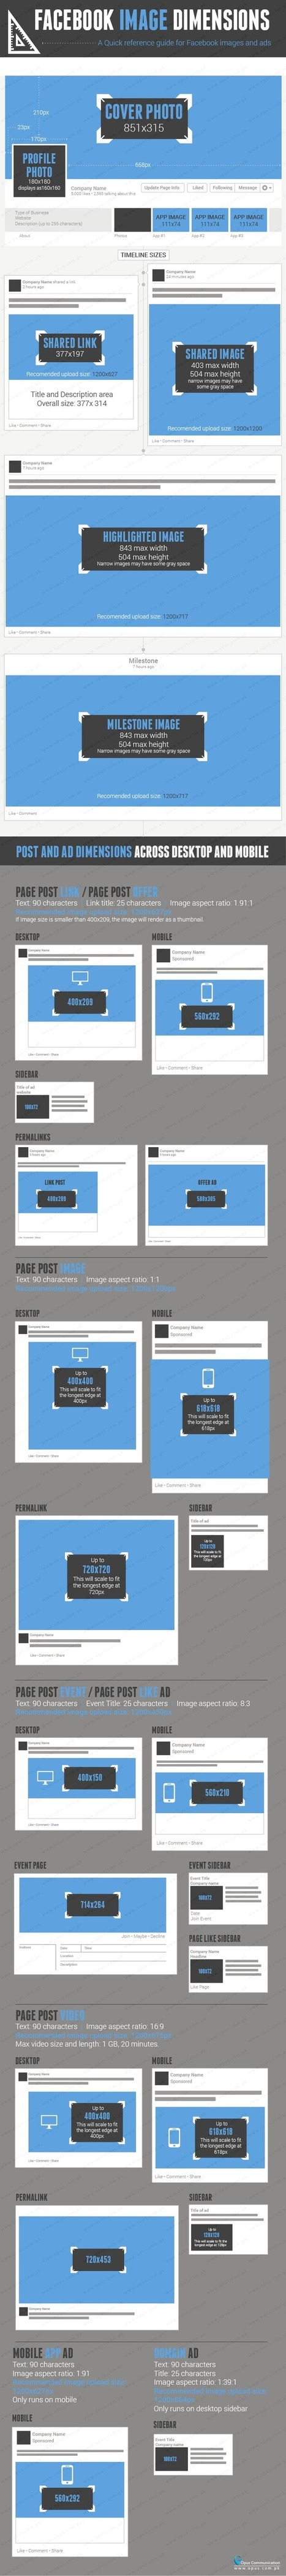 All Facebook Image Dimensions: Timeline, Posts, Ads [Infographic] | Social Media Marketing | Scoop.it